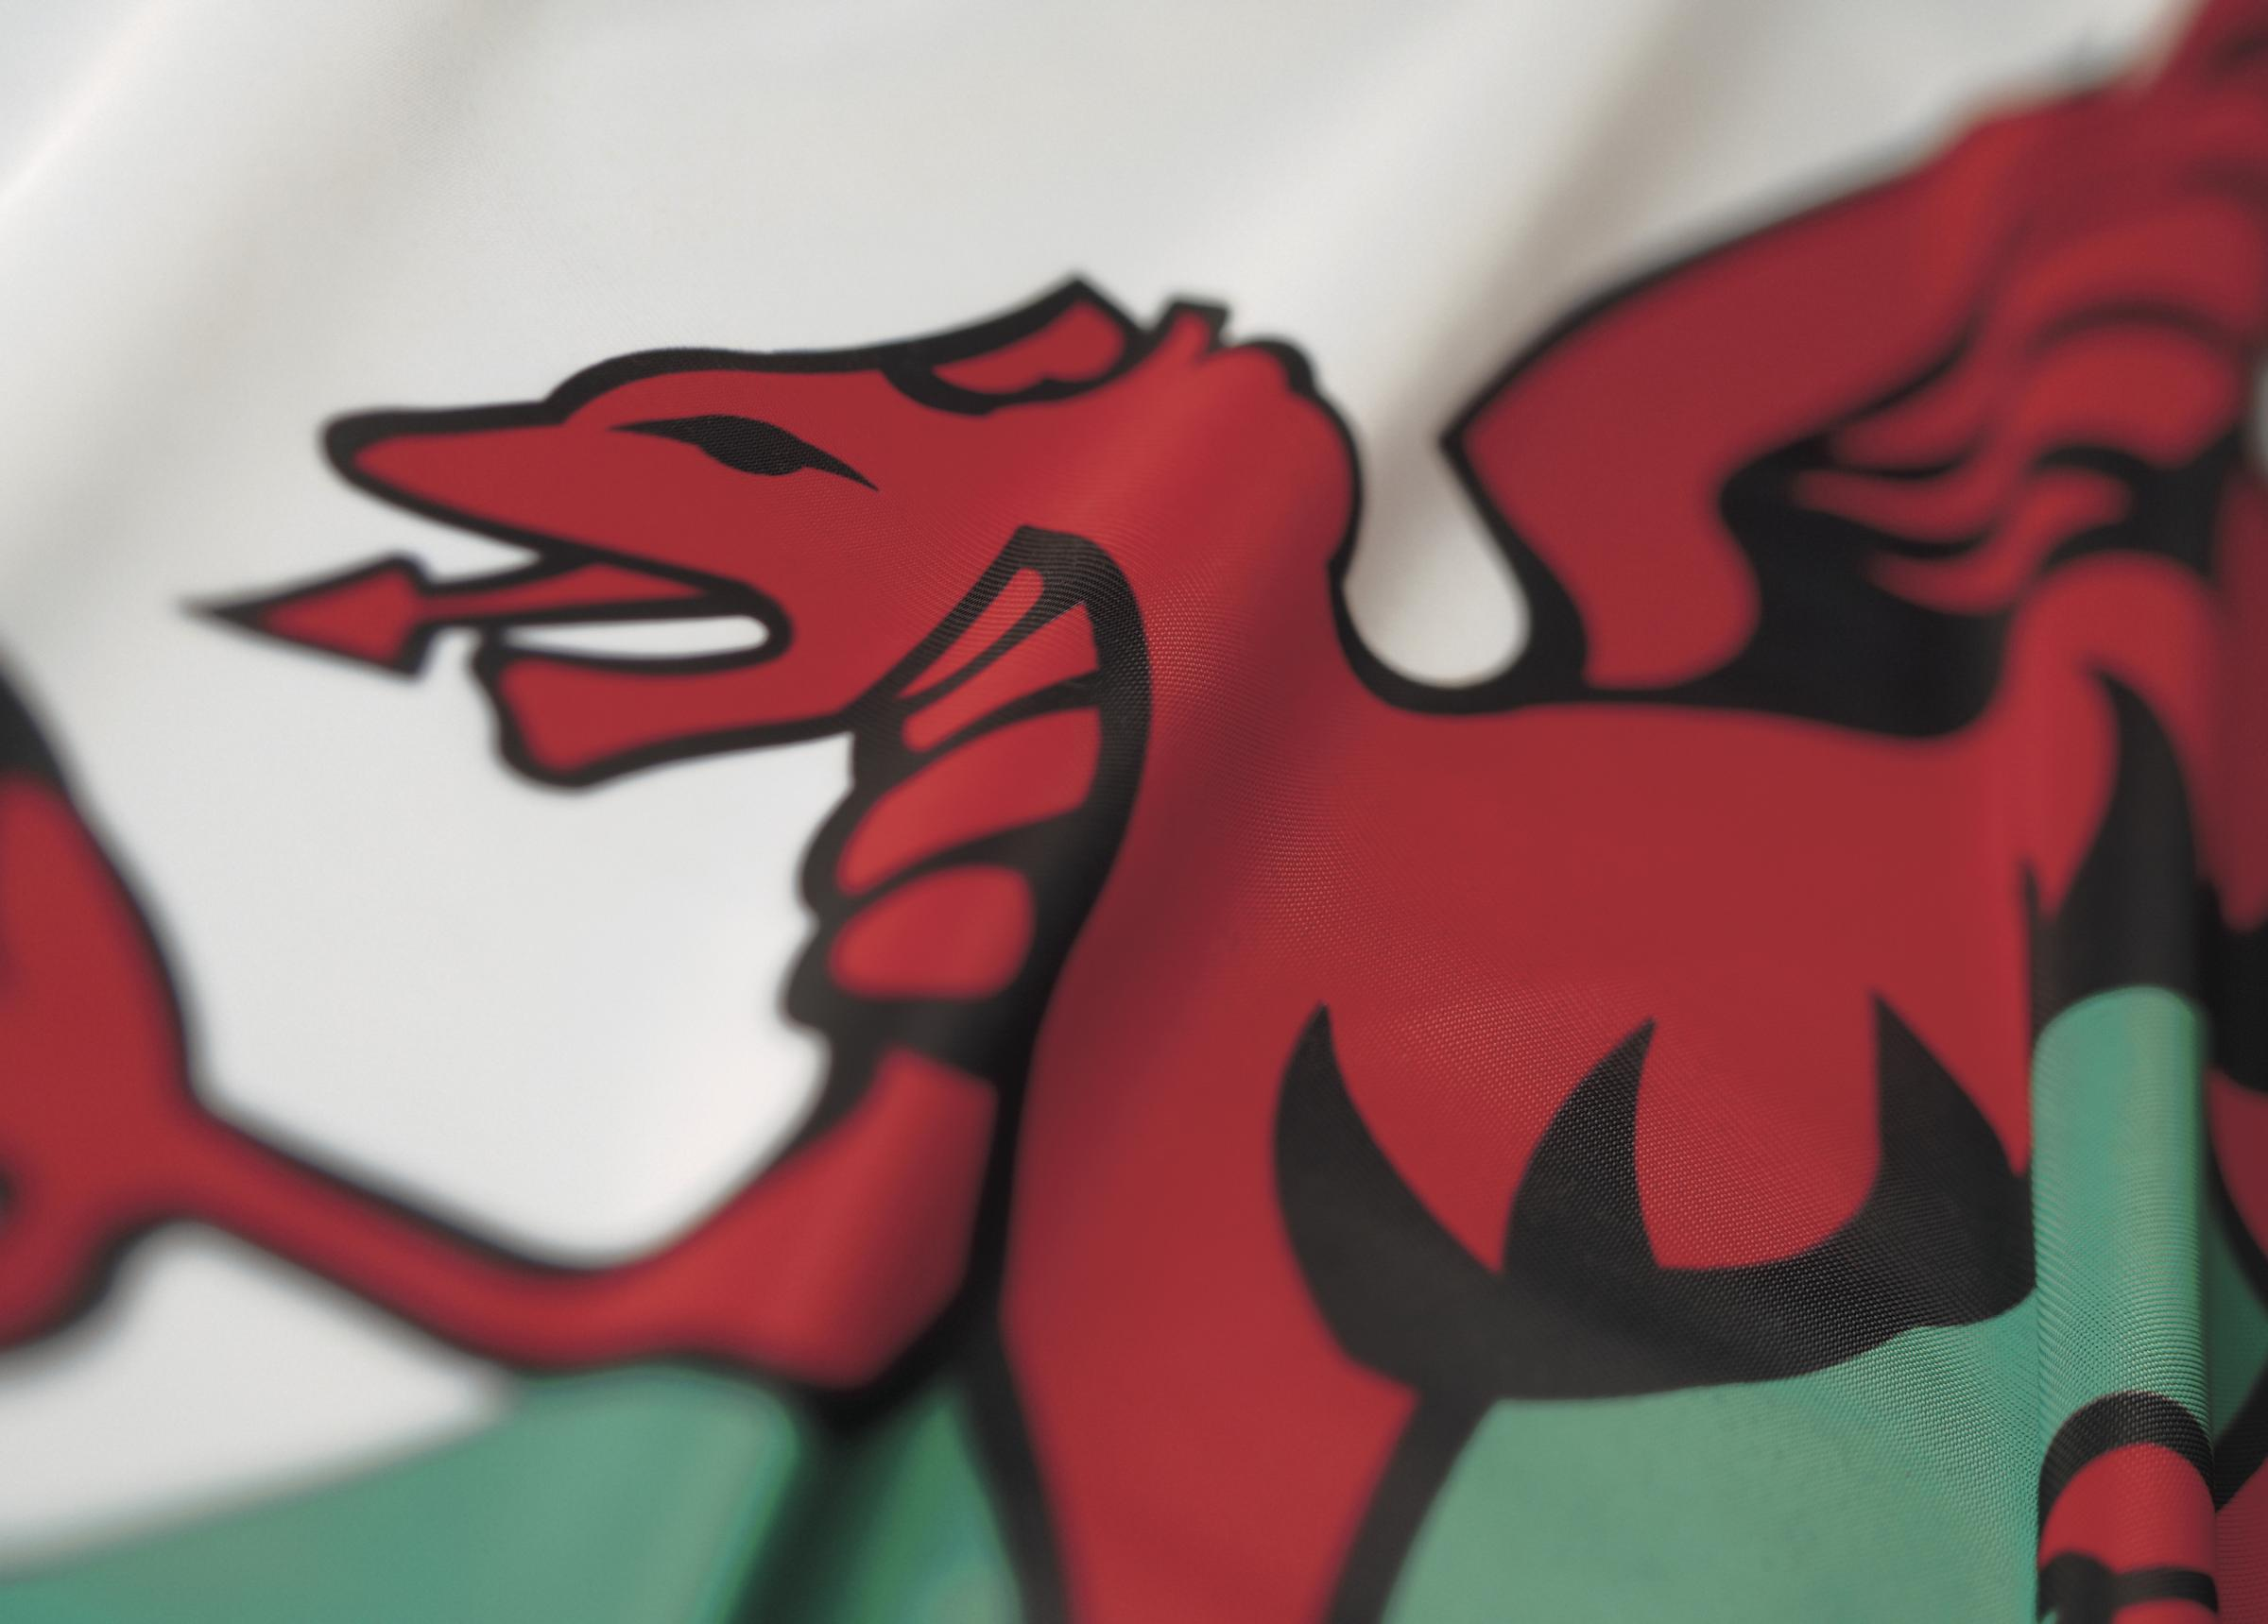 The Welsh flag. (52047781)